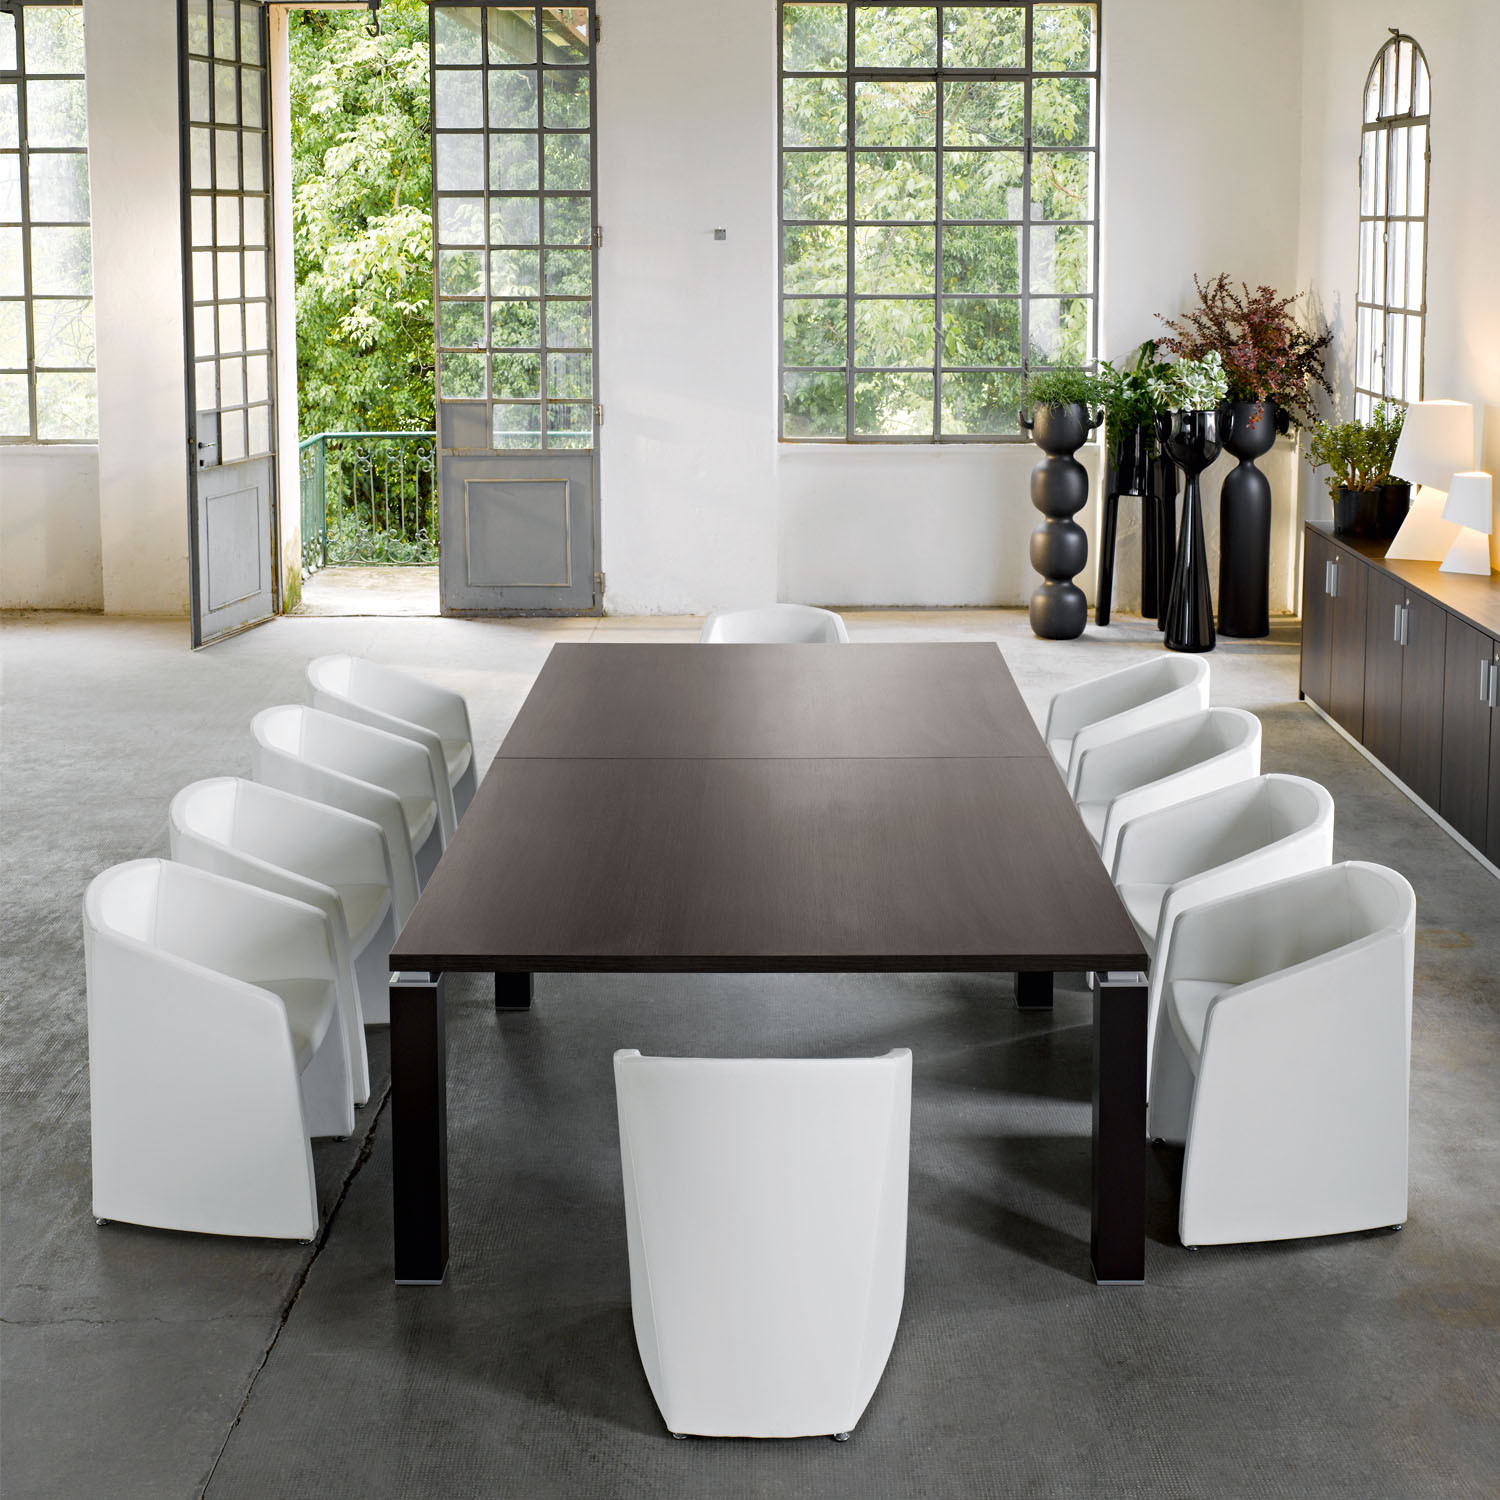 Tao Conference Tables by Sinetica